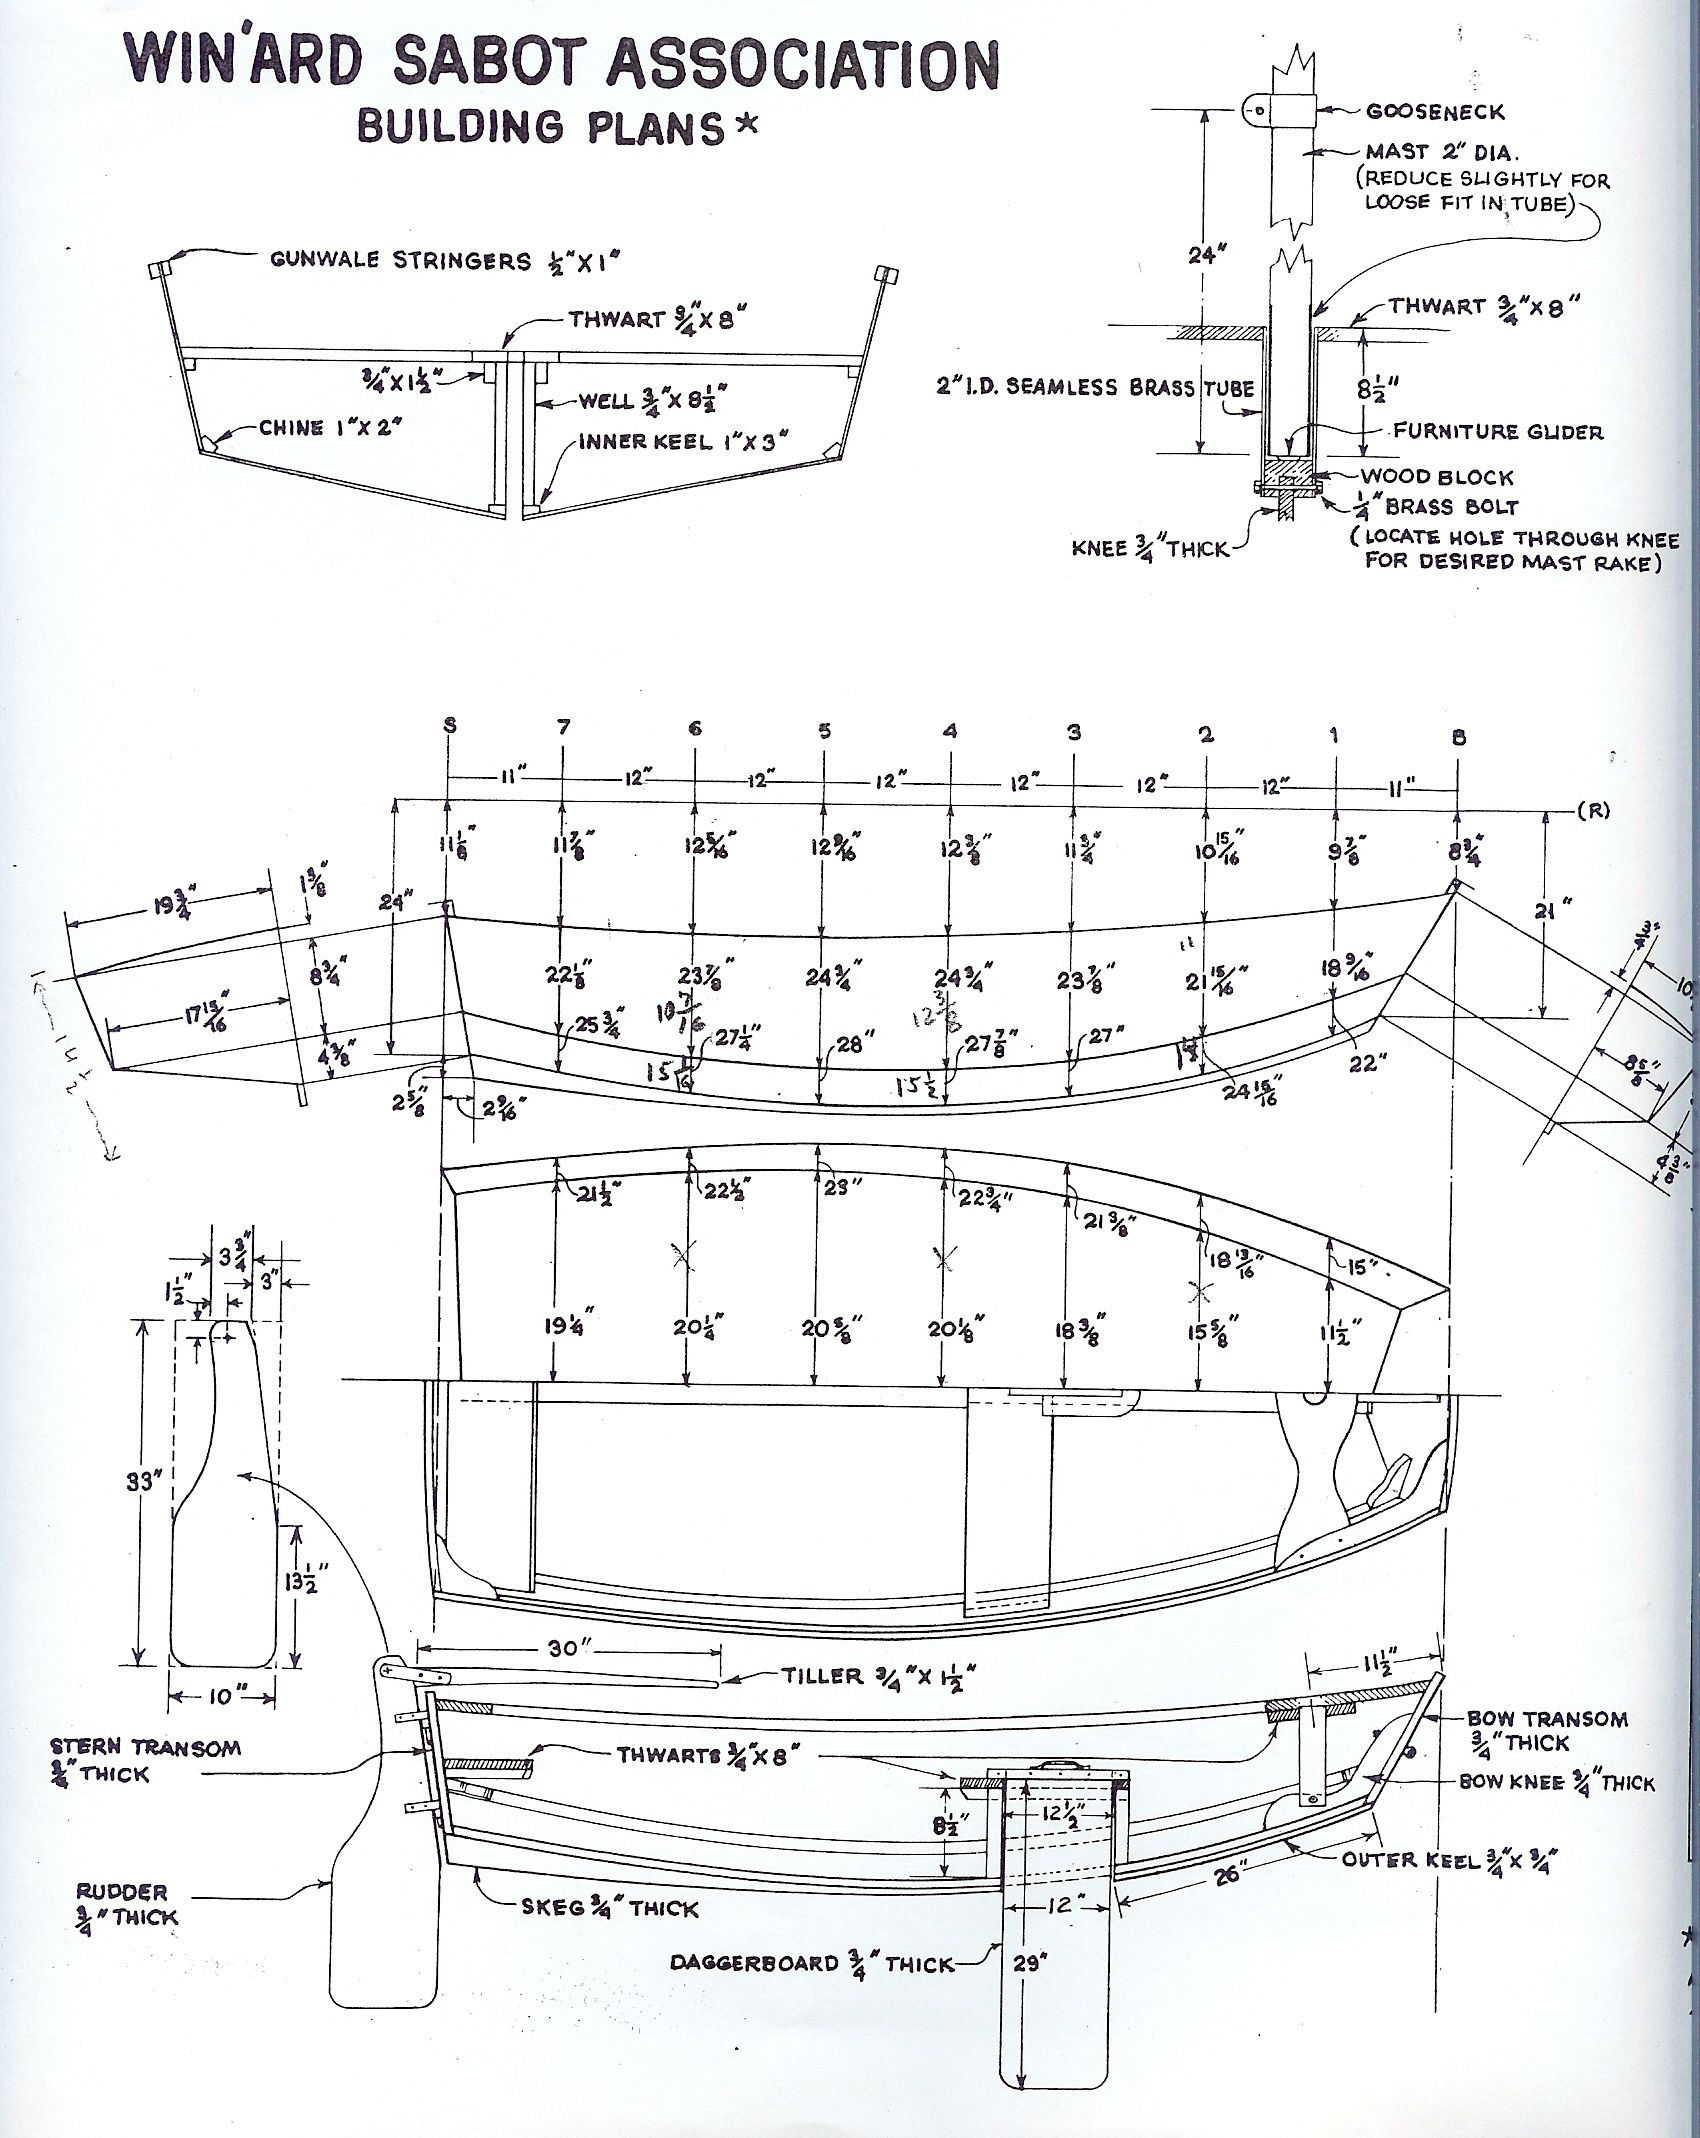 Build Your Own Opti Boat Plans Build Your Own Opti